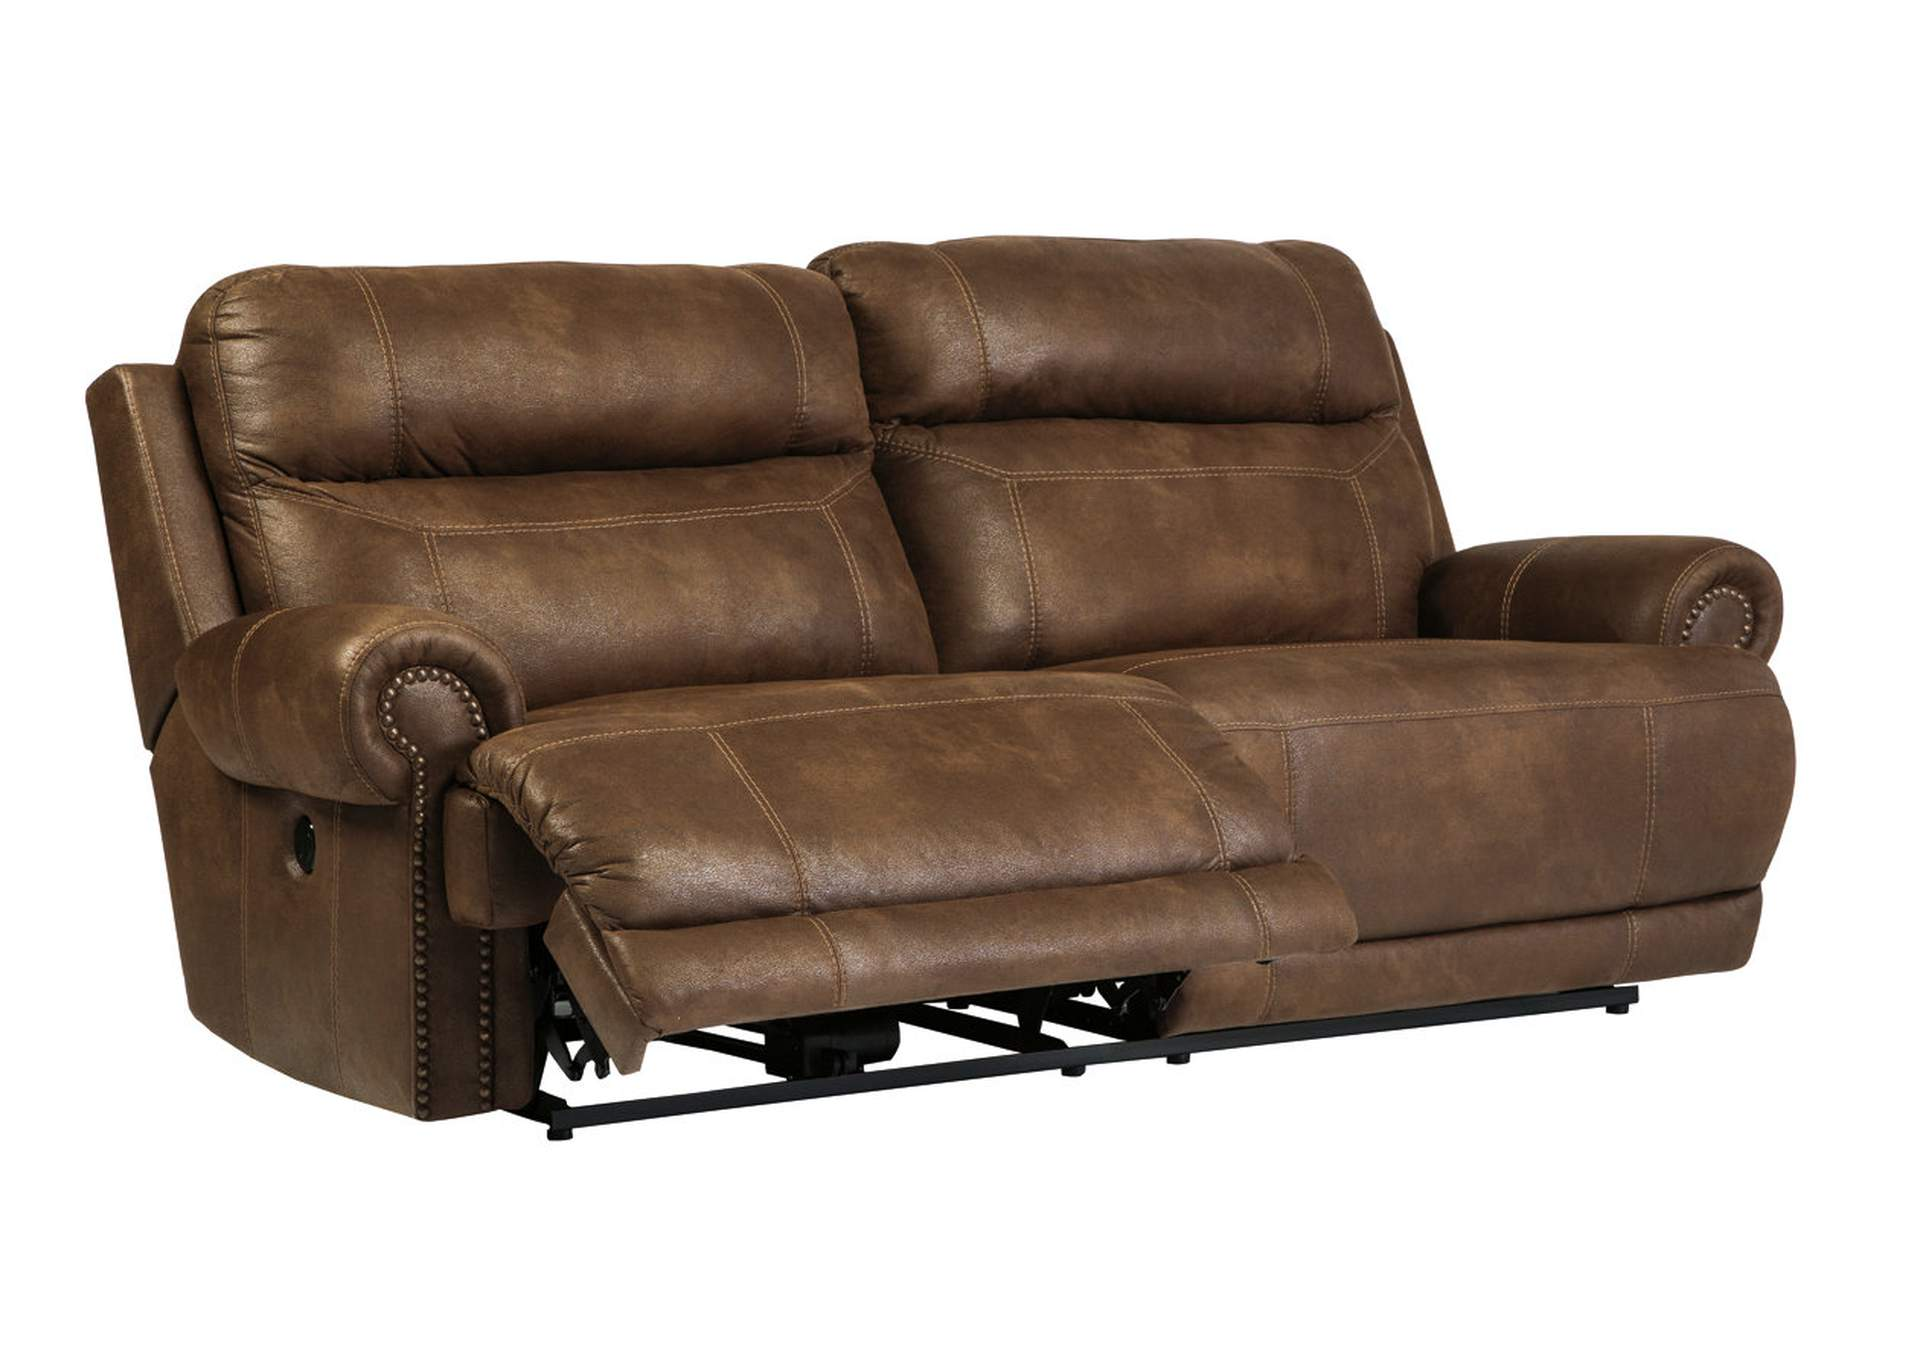 sleeper sofas chicago il sofa reupholstery cost uk carpet corner austere brown 2 seat reclining signature design by ashley